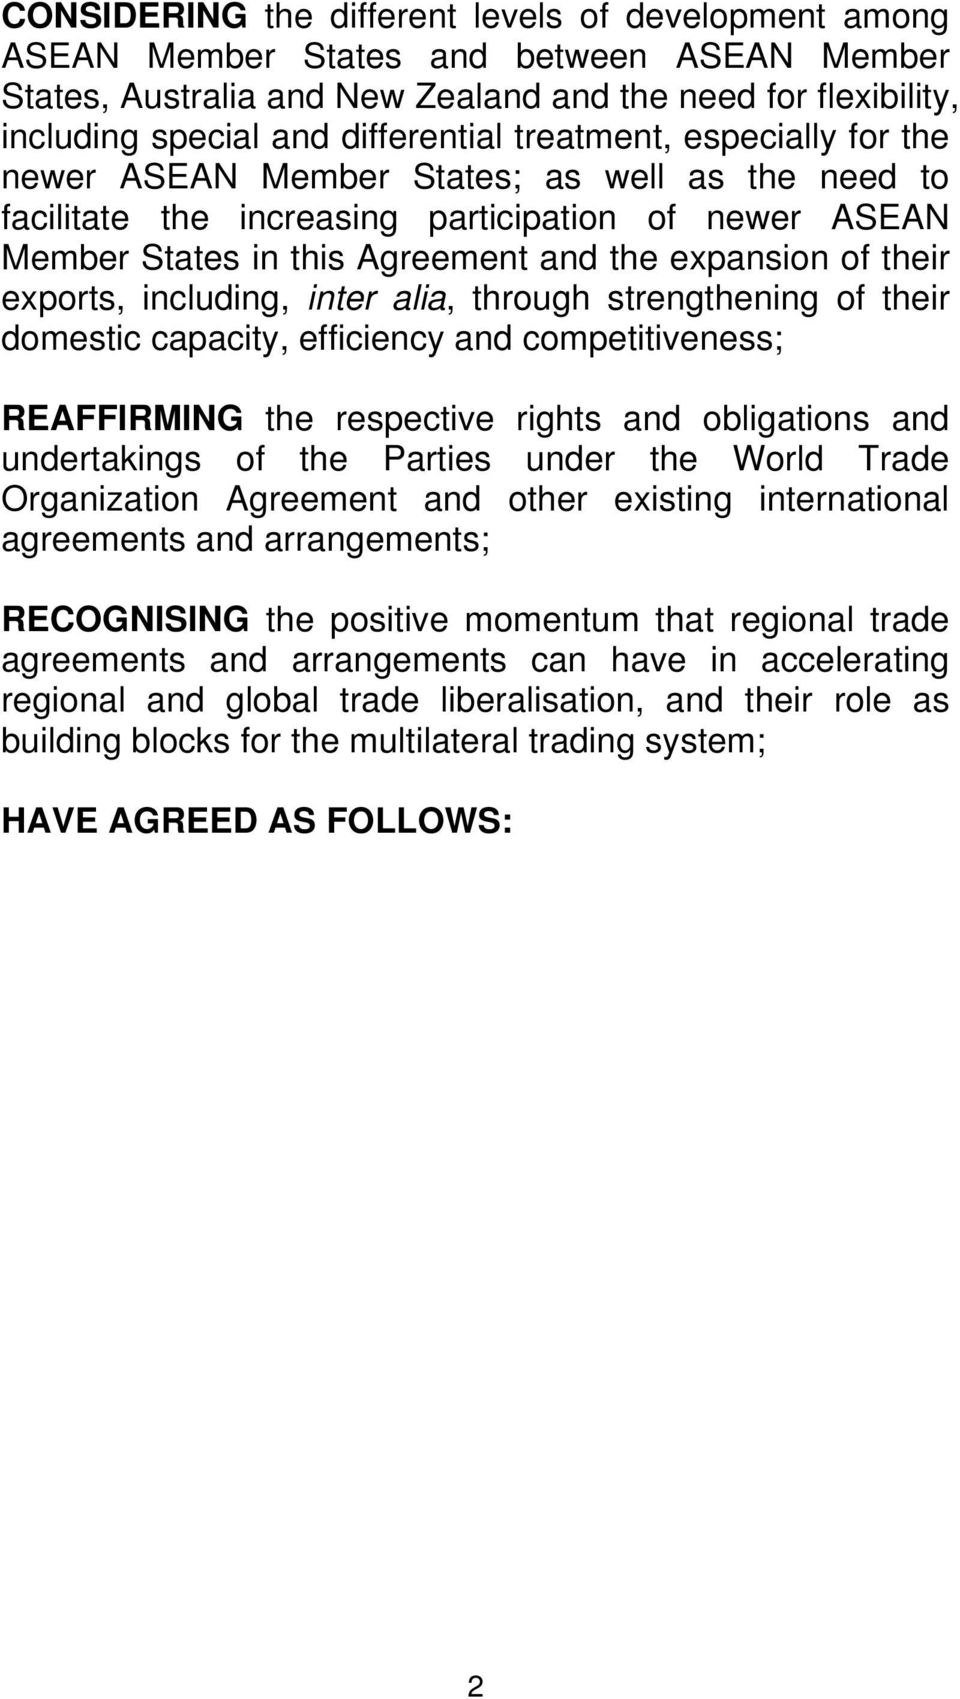 exports, including, inter alia, through strengthening of their domestic capacity, efficiency and competitiveness; REAFFIRMING the respective rights and obligations and undertakings of the Parties